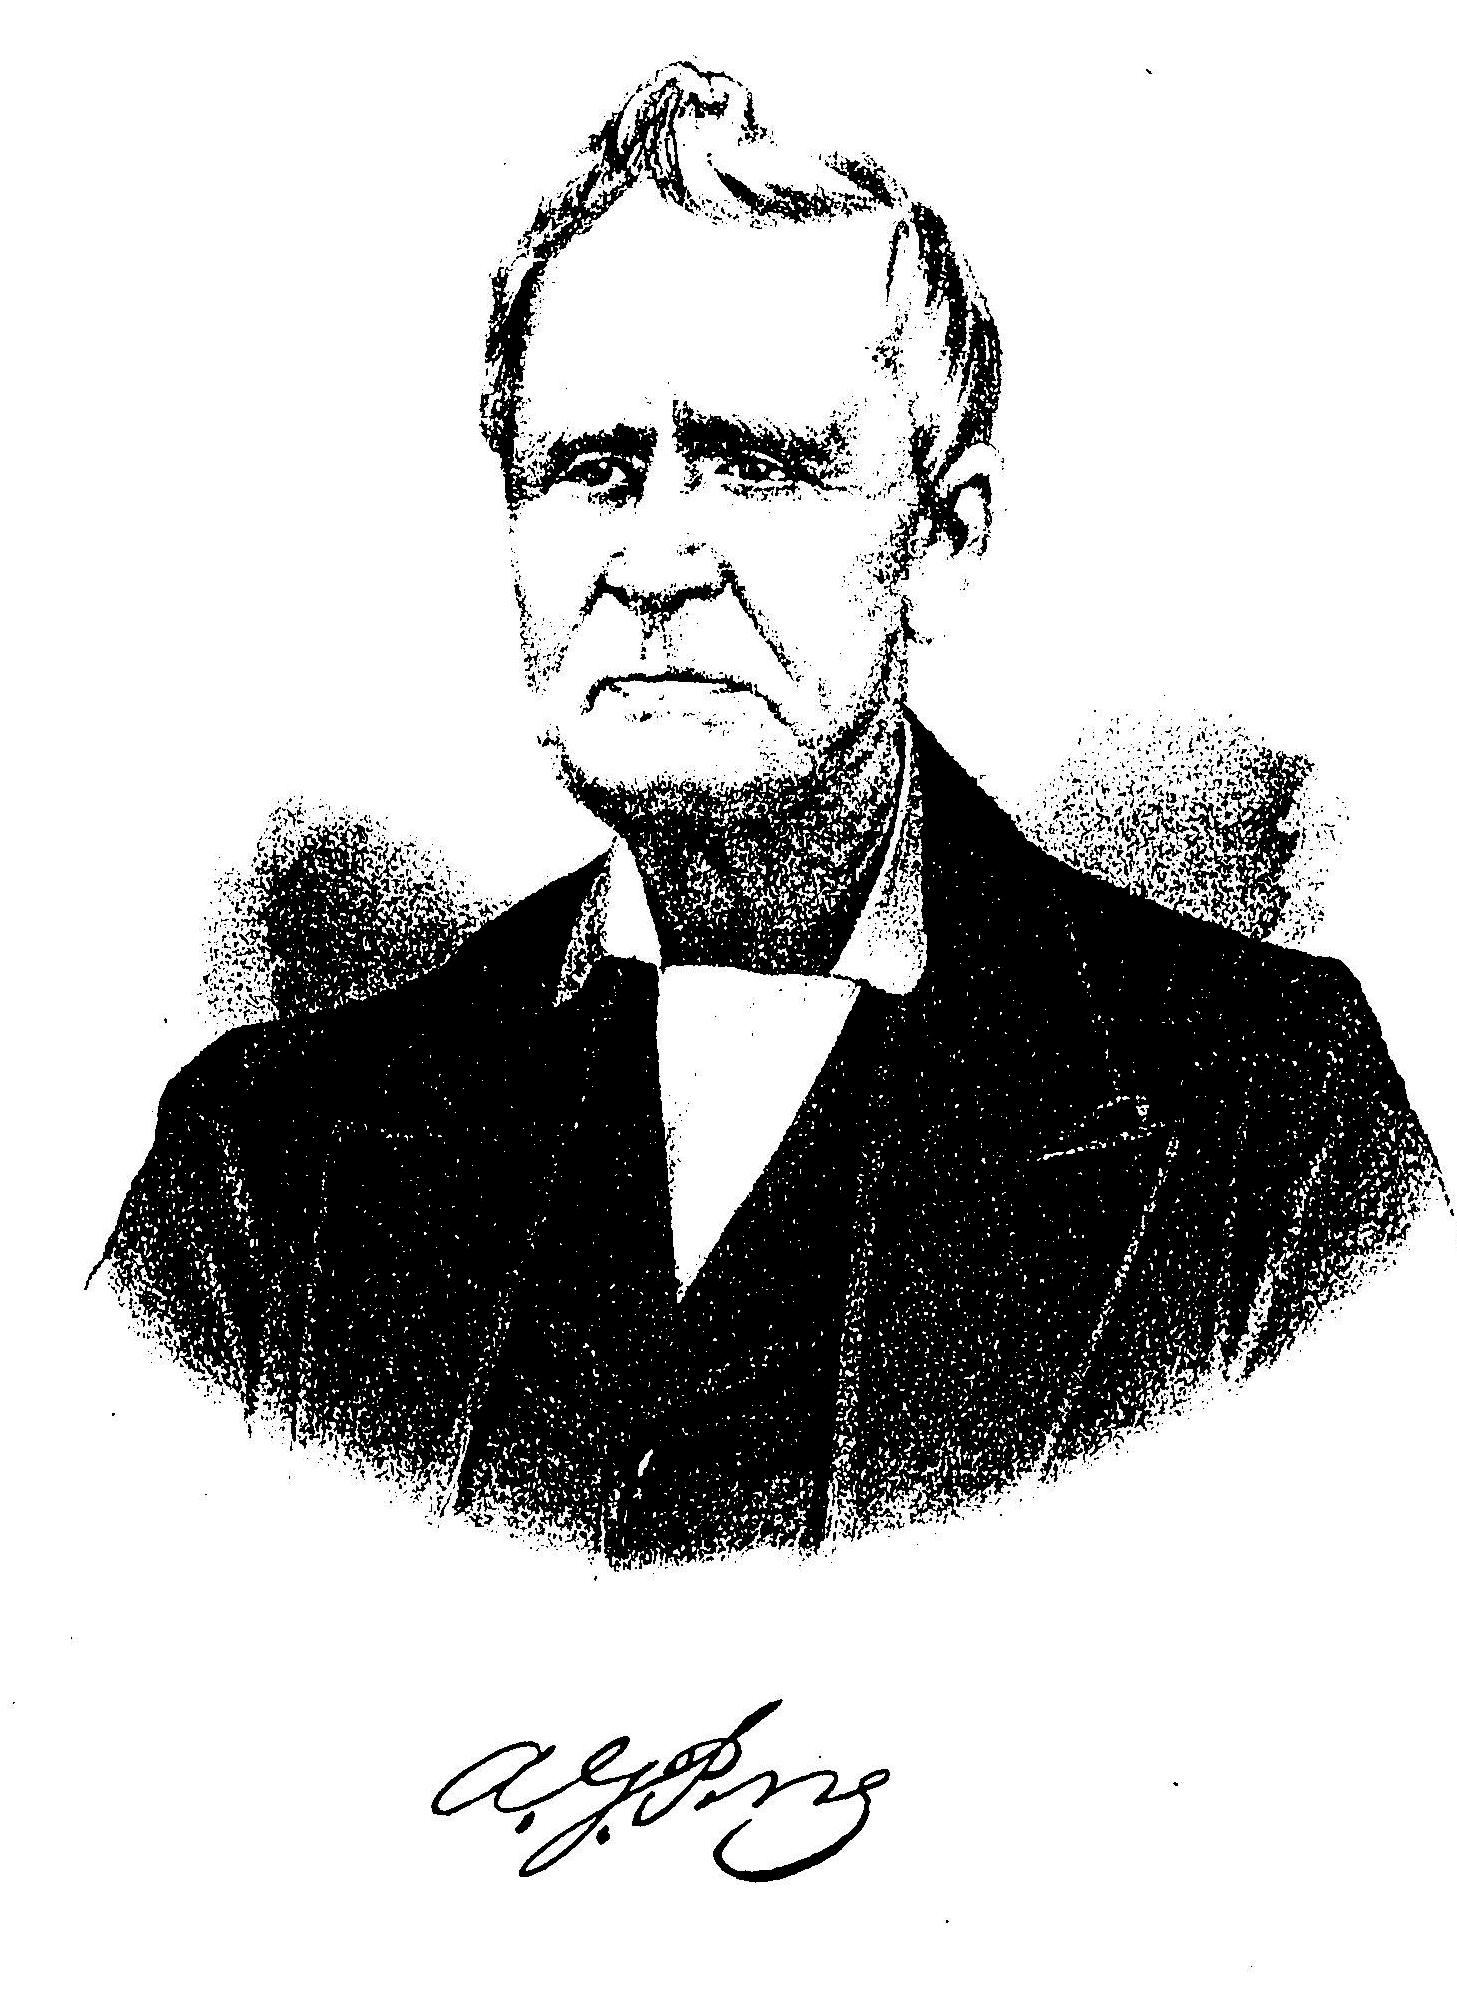 Albert G. Perry (From Memorial and Biographical History of McLennan, Falls, Bell and Coryell Counties Texas, 1893; courtesy descendant David Perry)